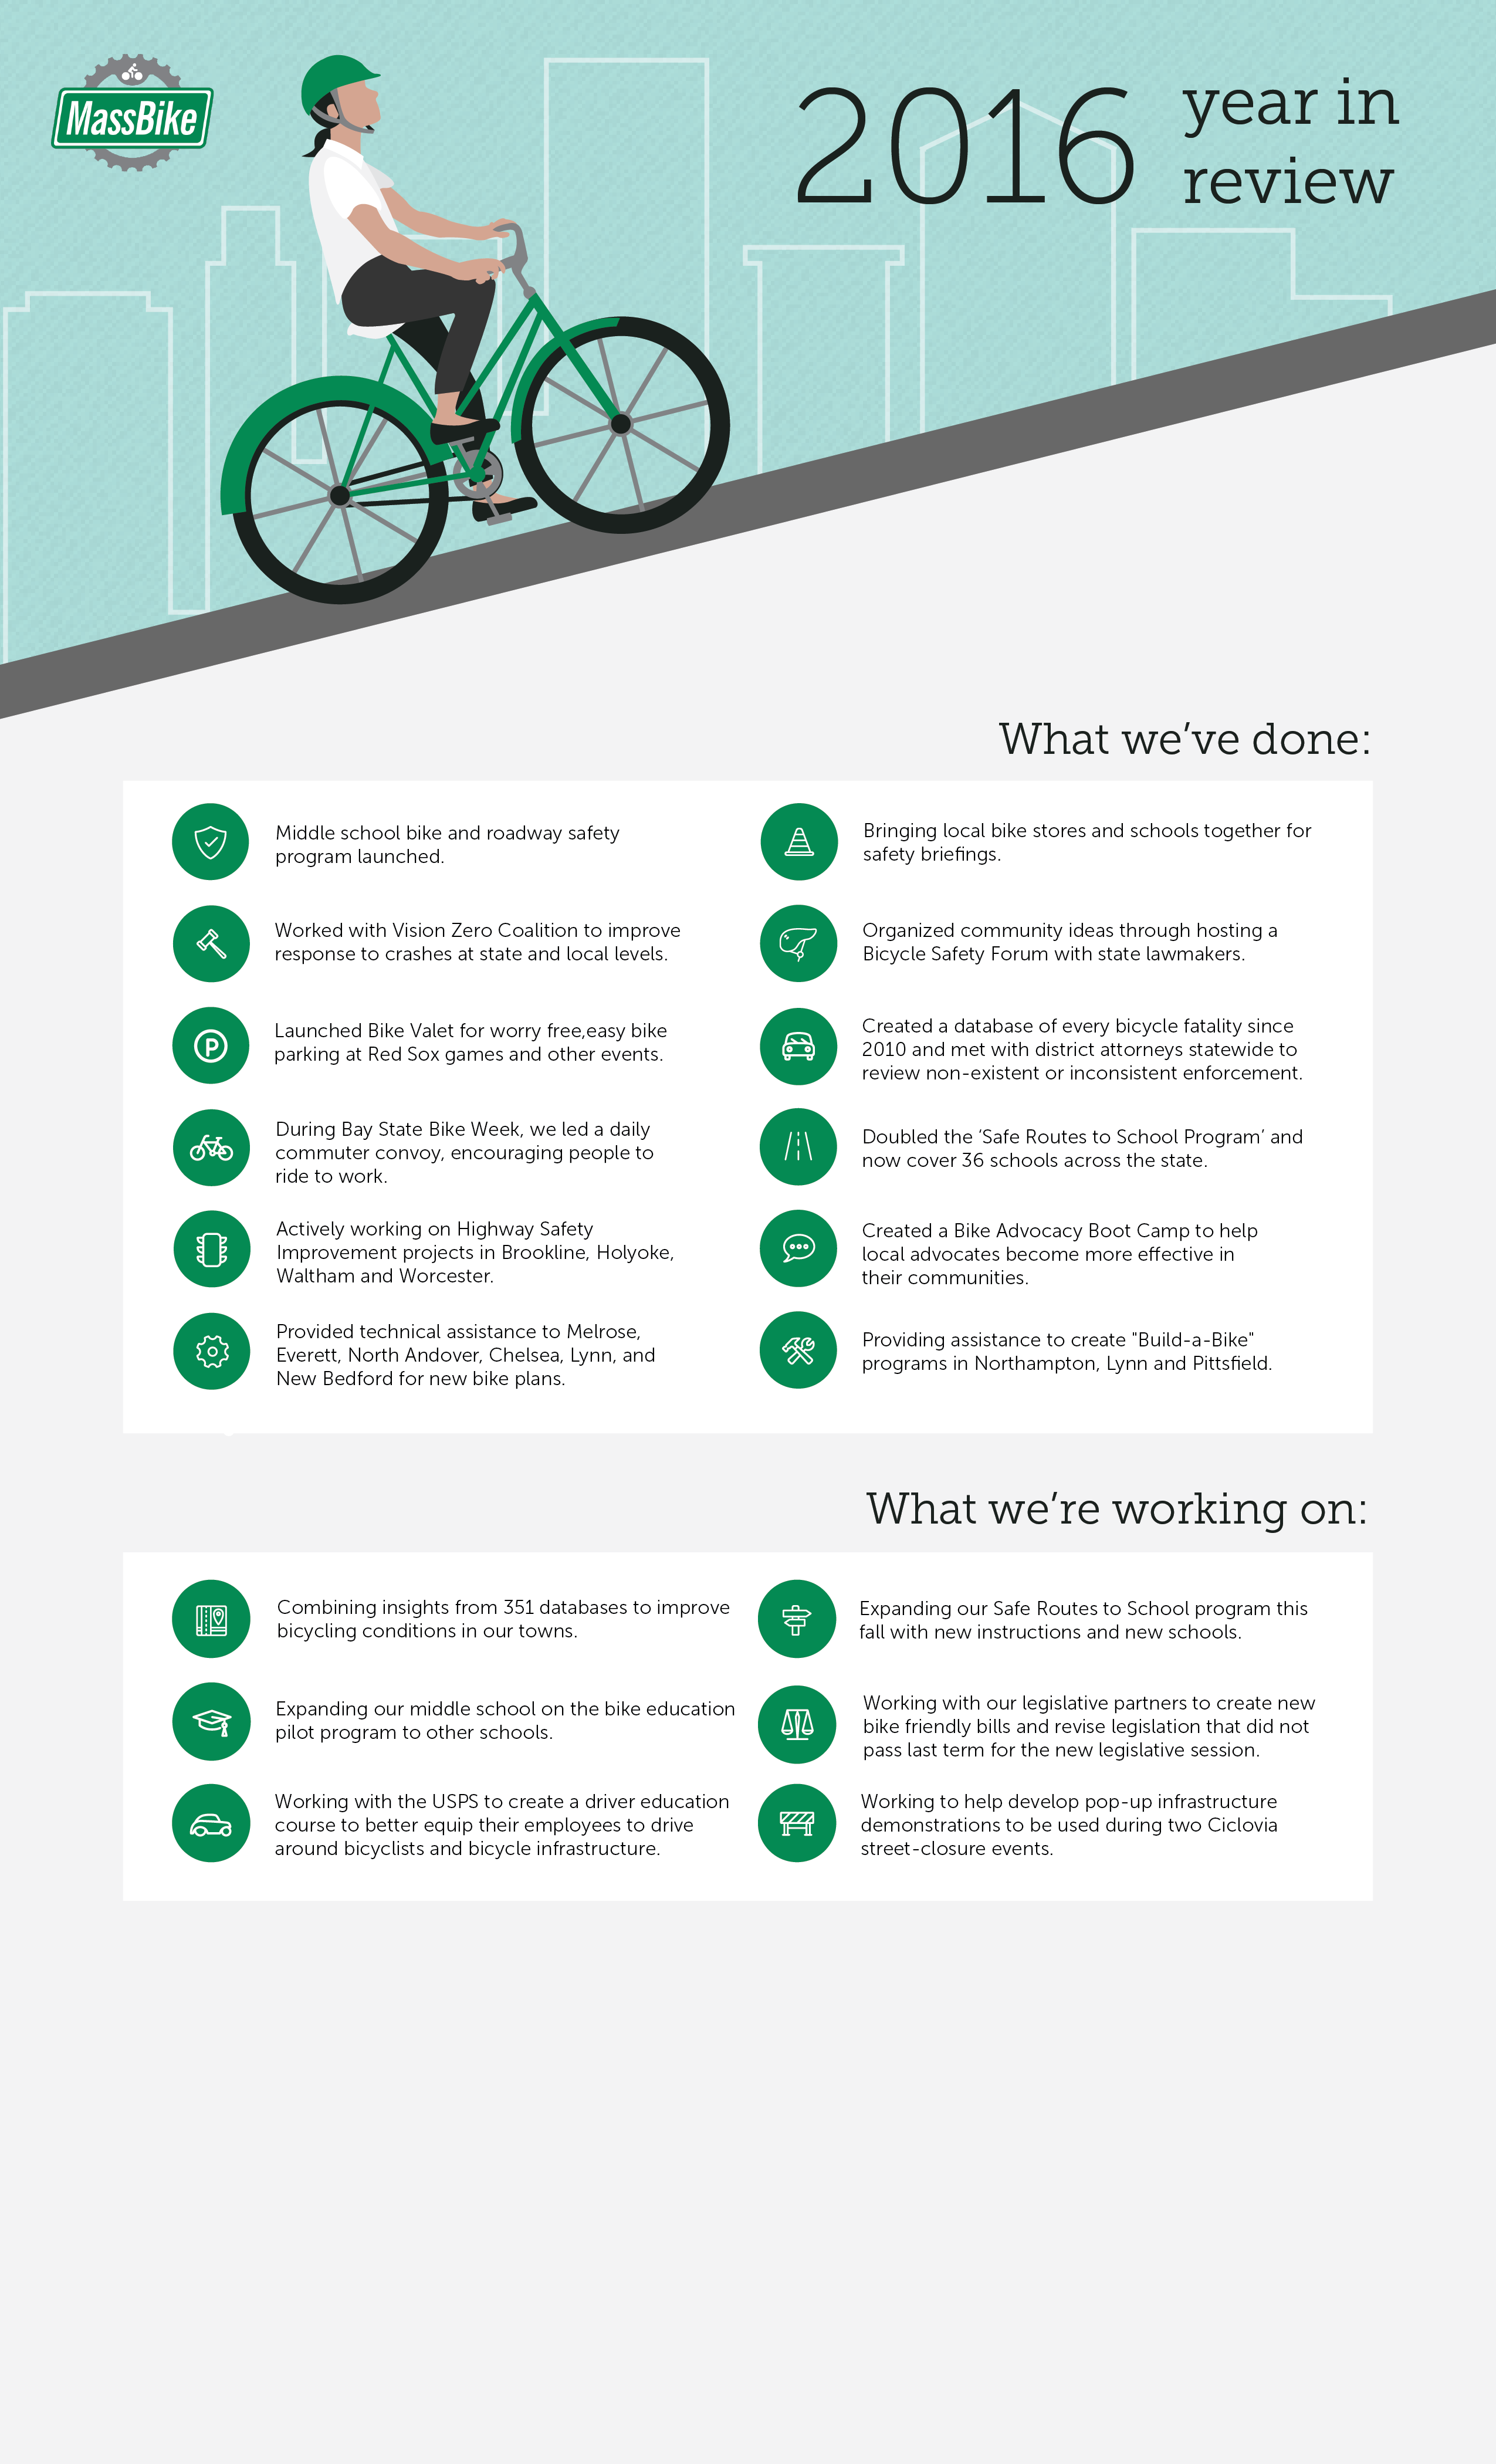 massbike-infographic-110416.png